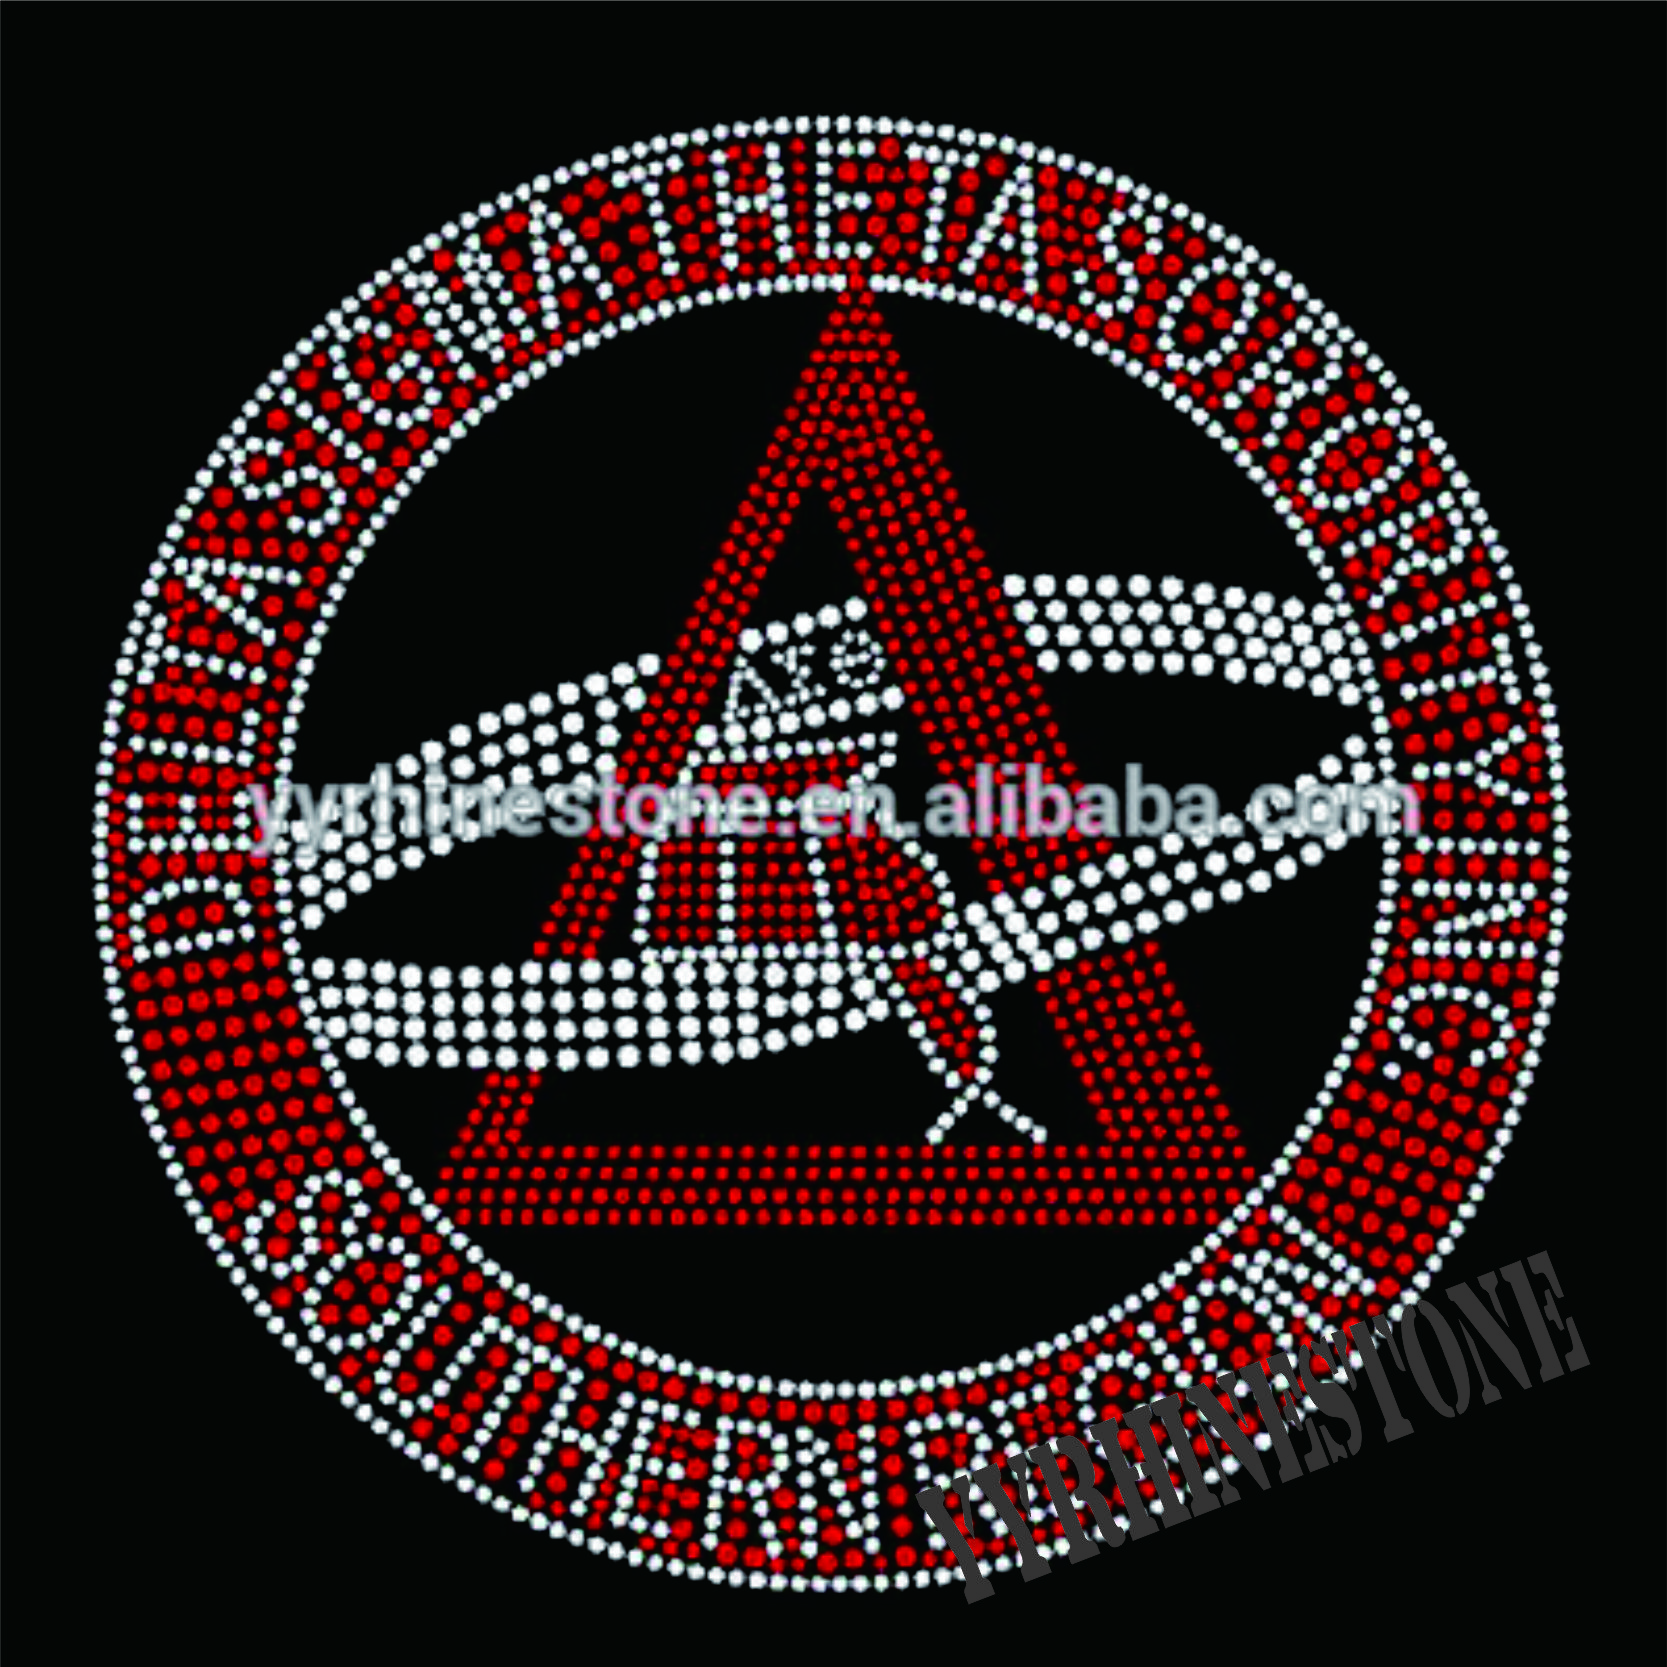 Delta sigma theta rhinestone transfers for t-shirts